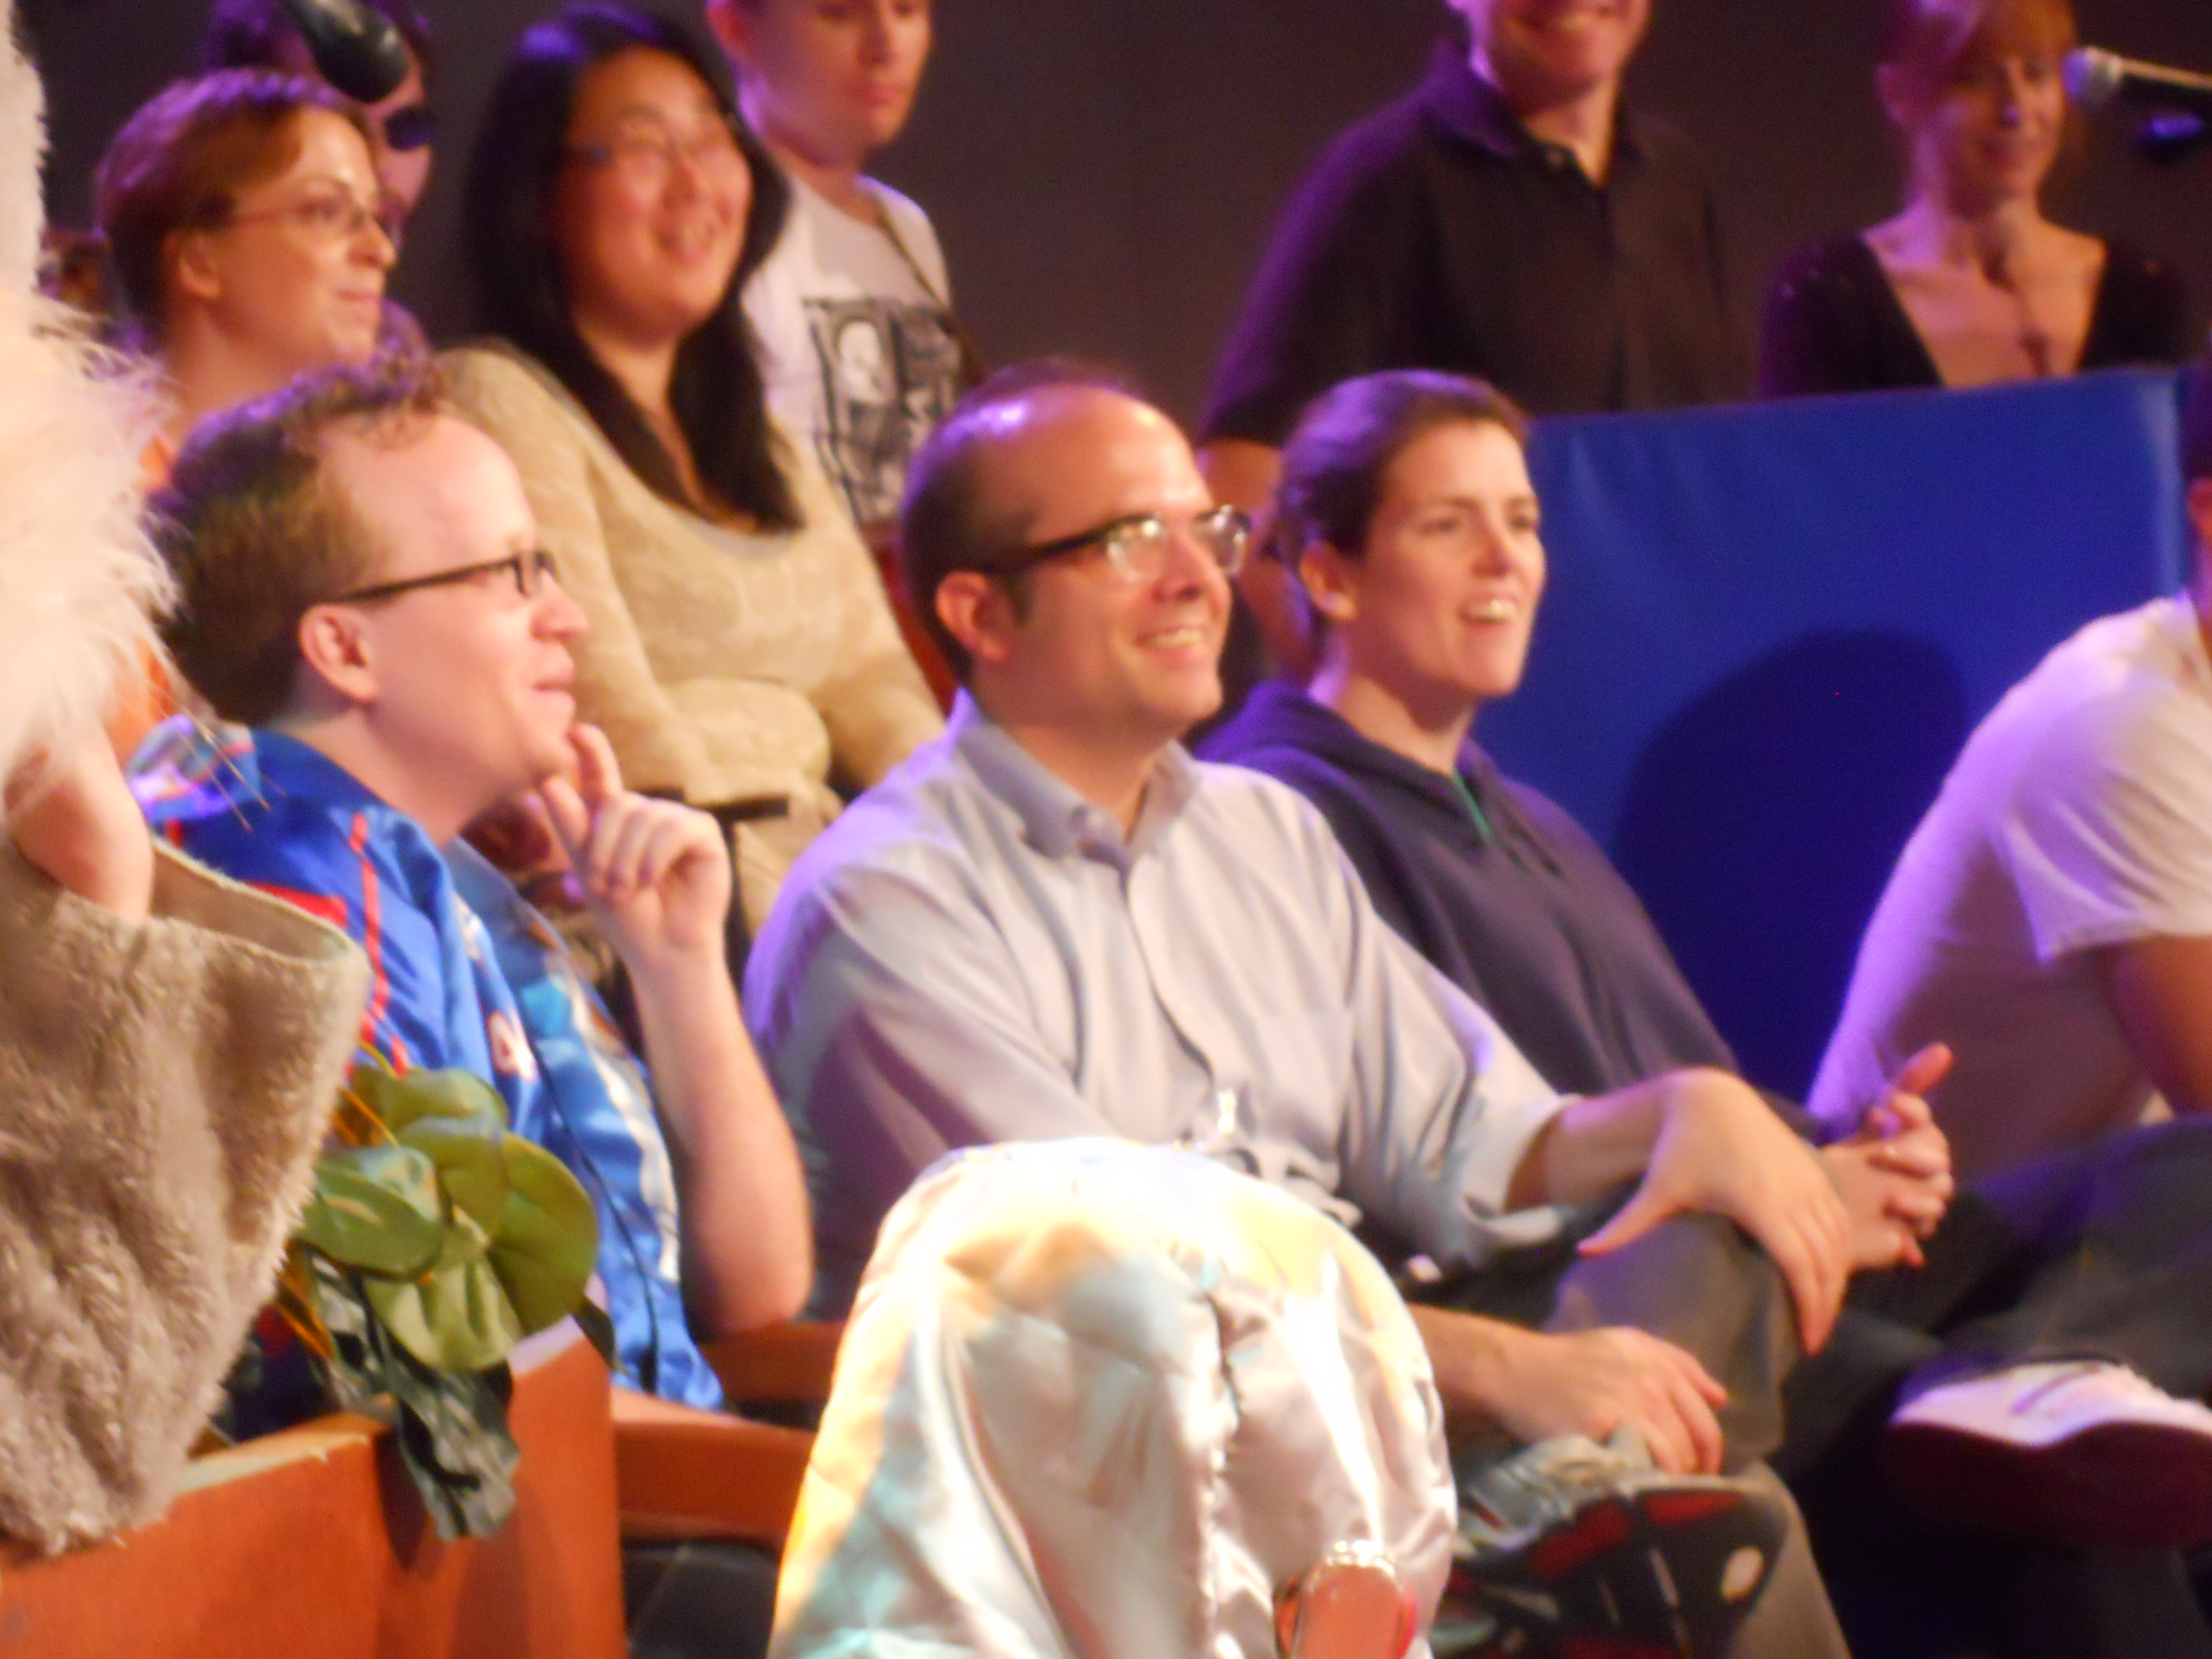 Chris Gethard Show Live! 9-28-2011 (6214984429).jpg I recently had the chance to go see my buddy world famous comedian do his thing, and catch